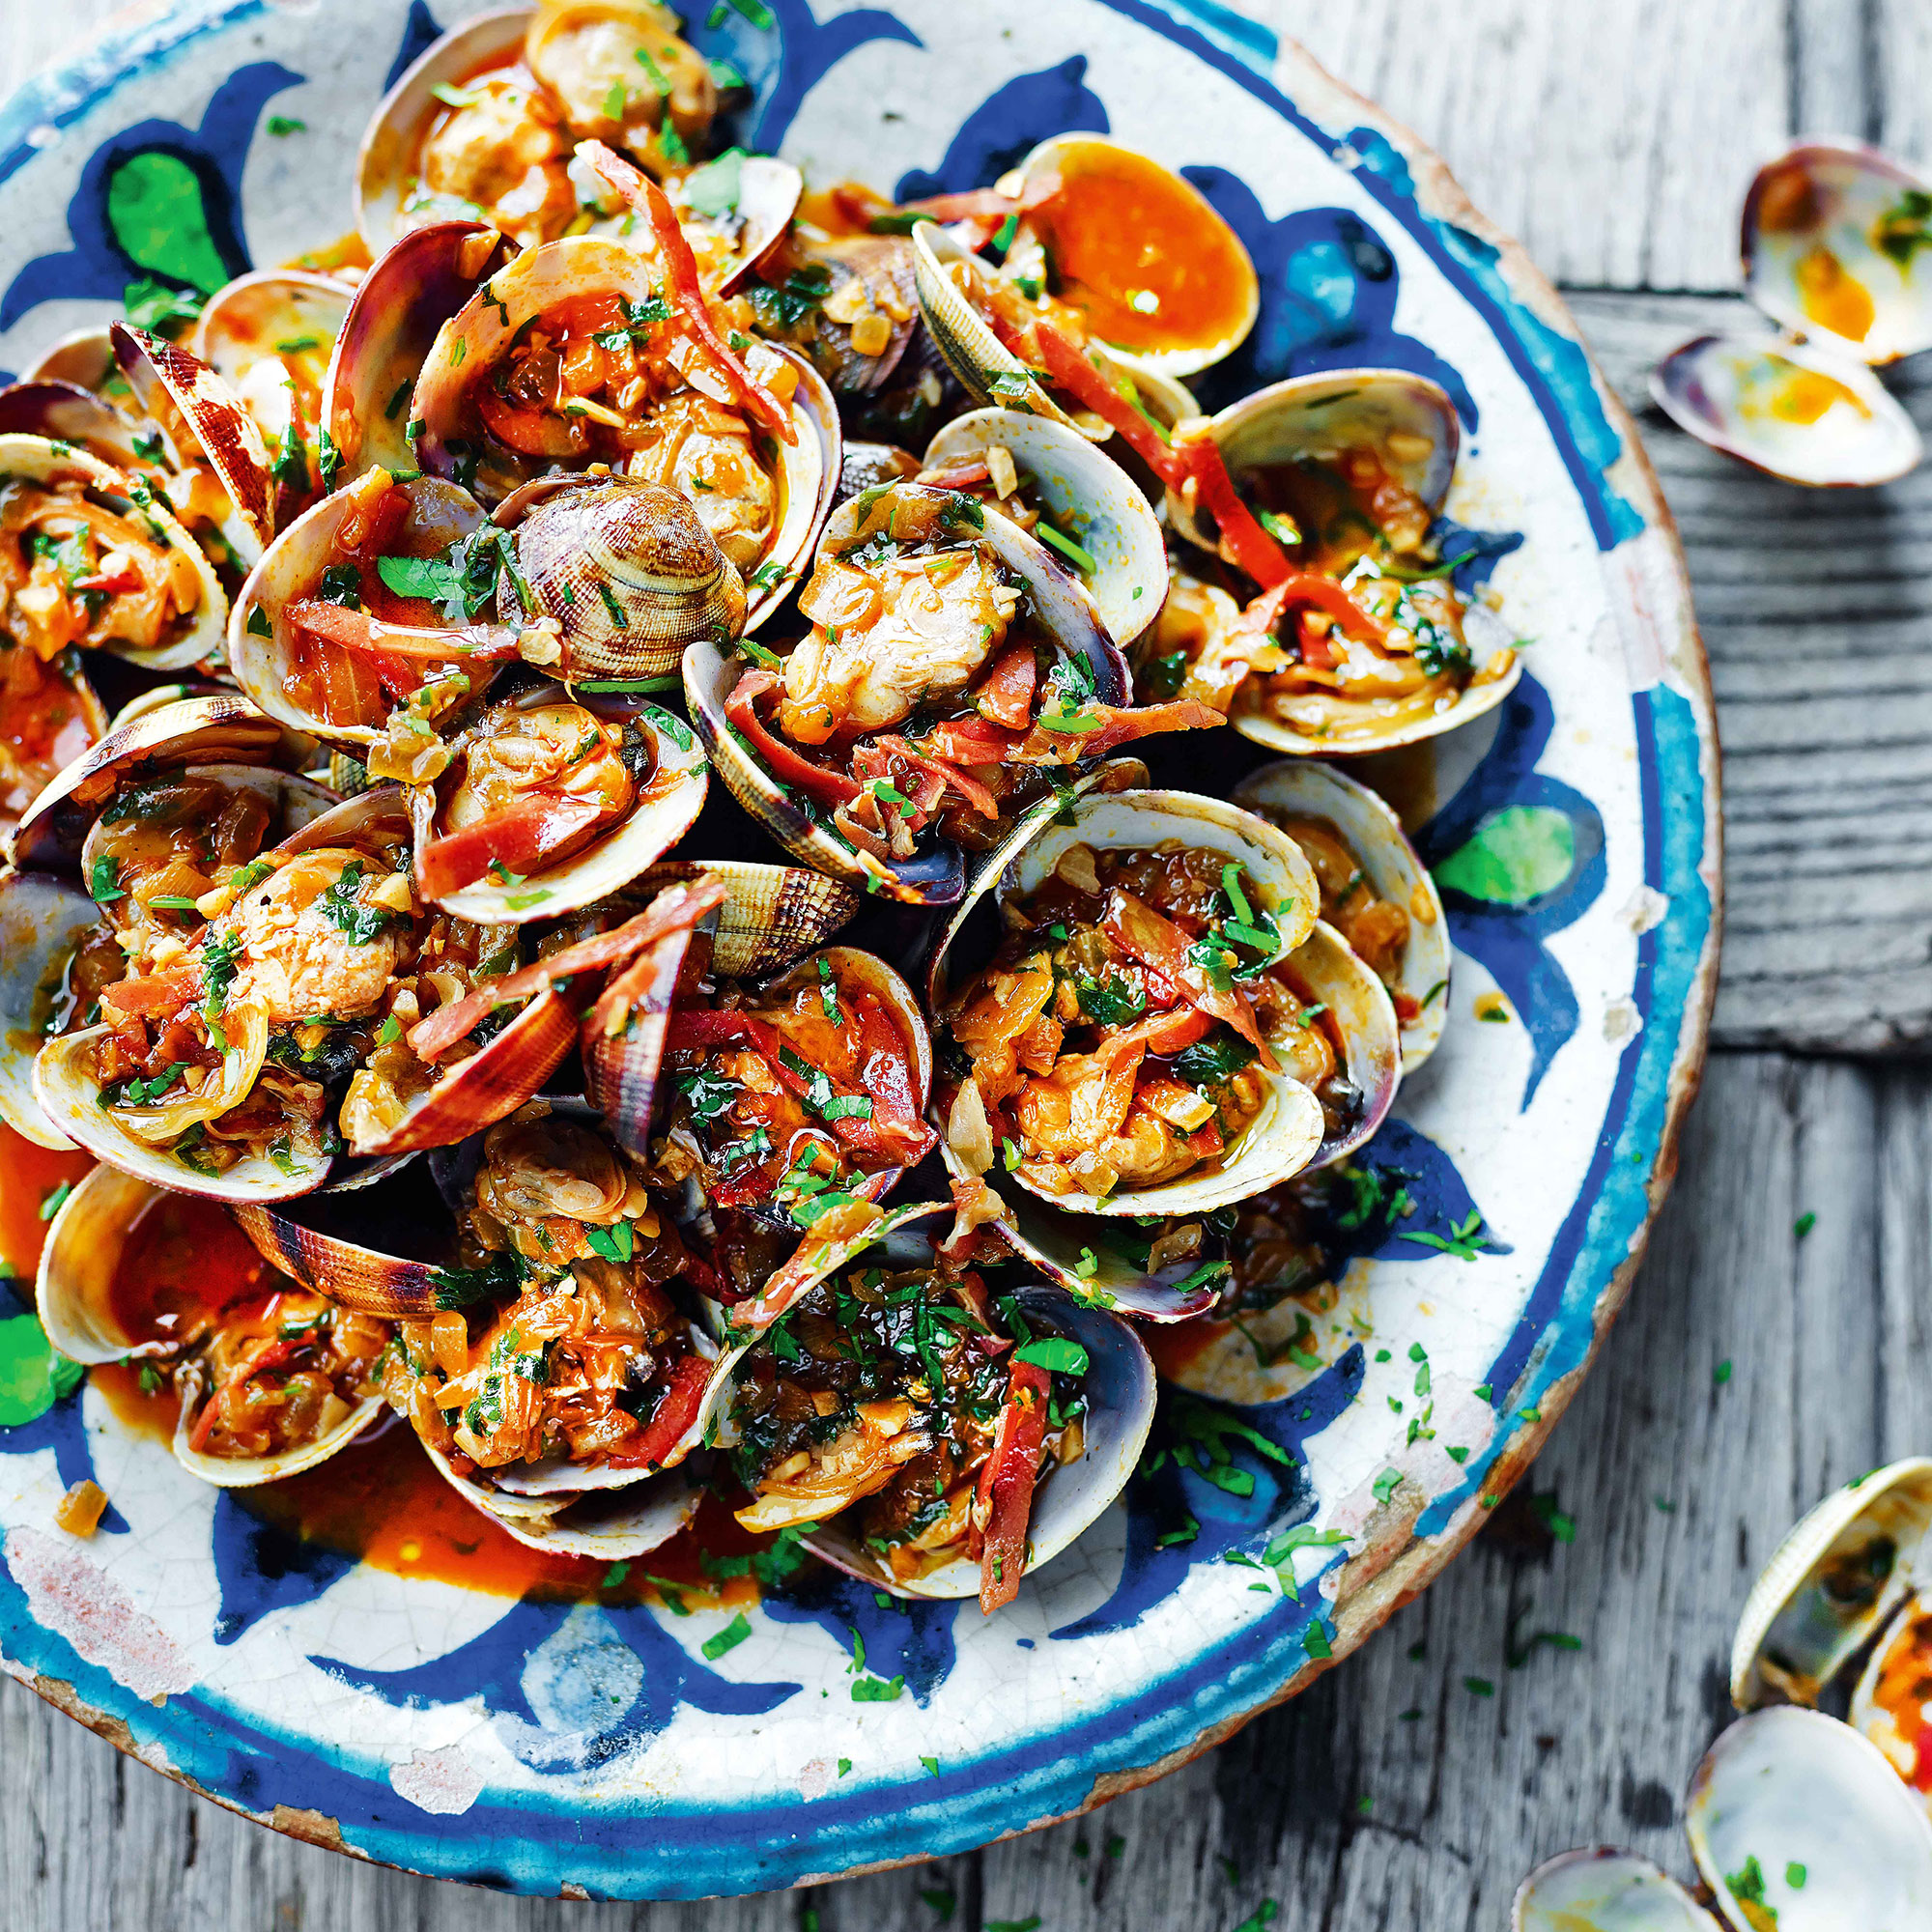 Omar Allibhoy's Clams with Sherry and Serrano Ham